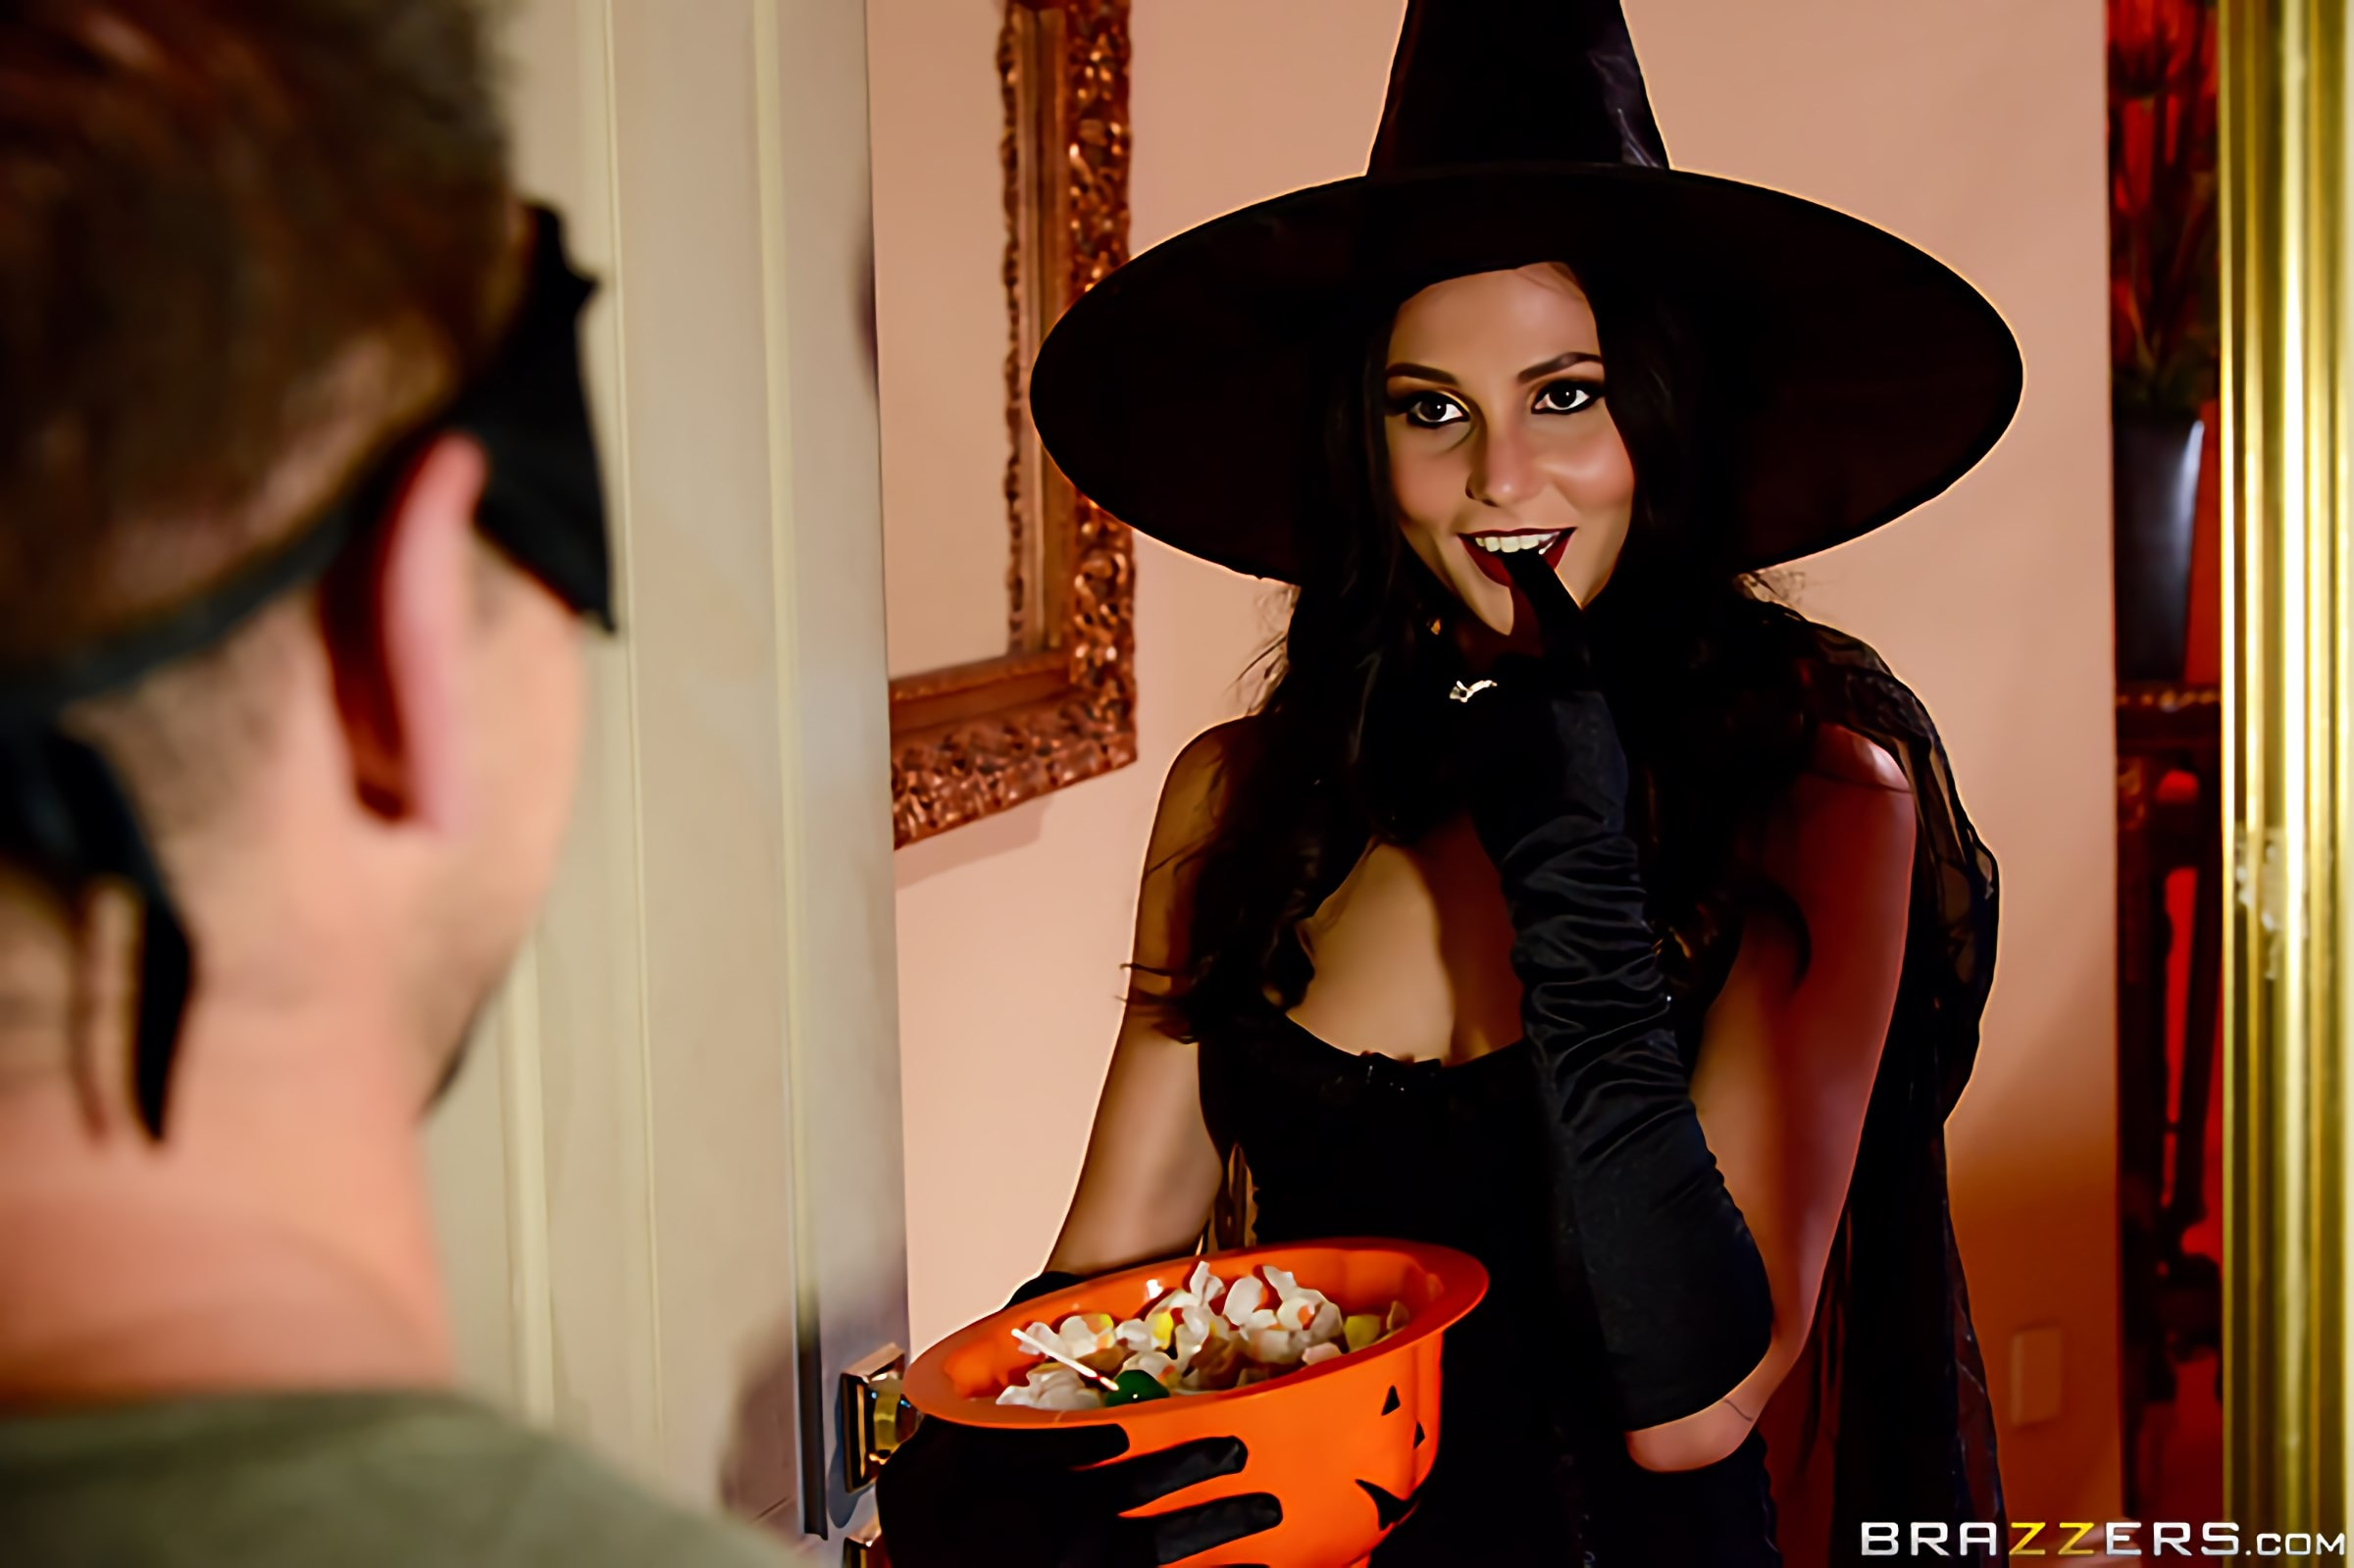 Brazzers 'Dick Or Treat' starring Ariana Marie (Photo 6)